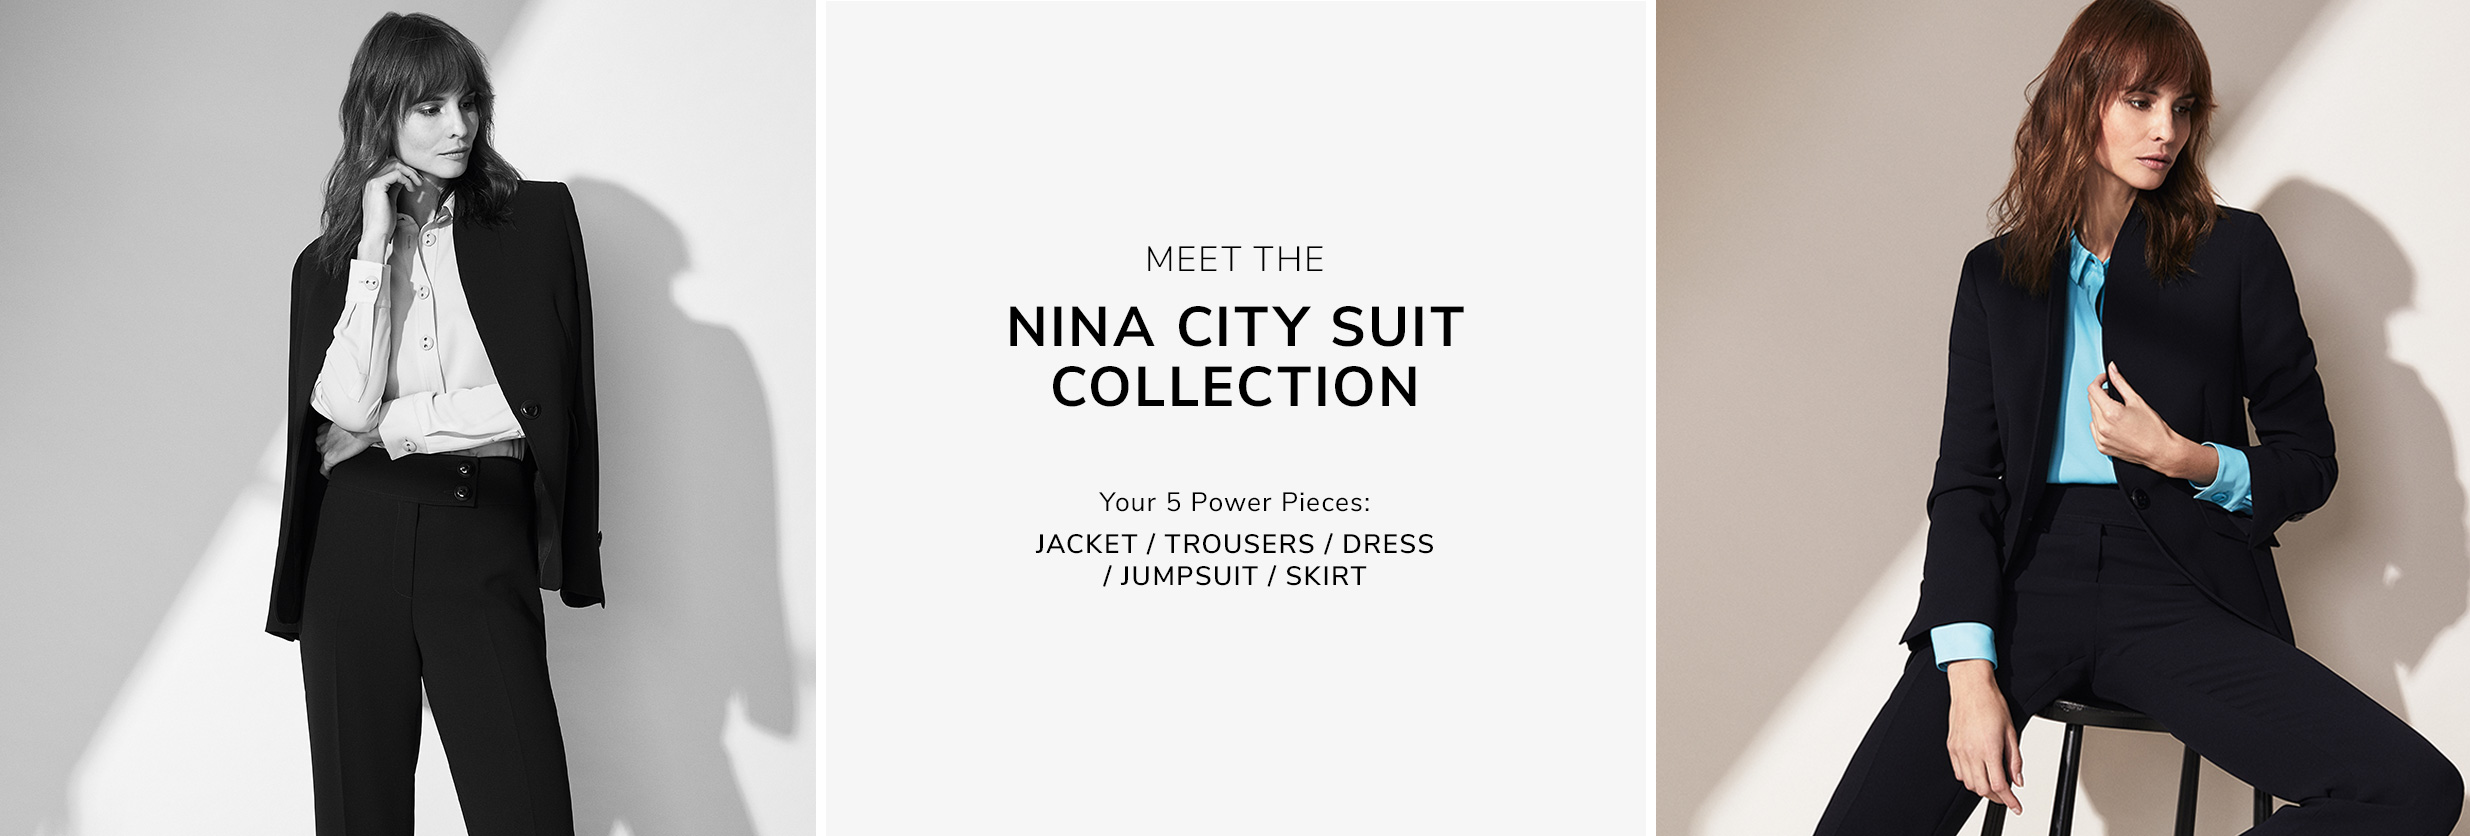 The Nina Suit Collection